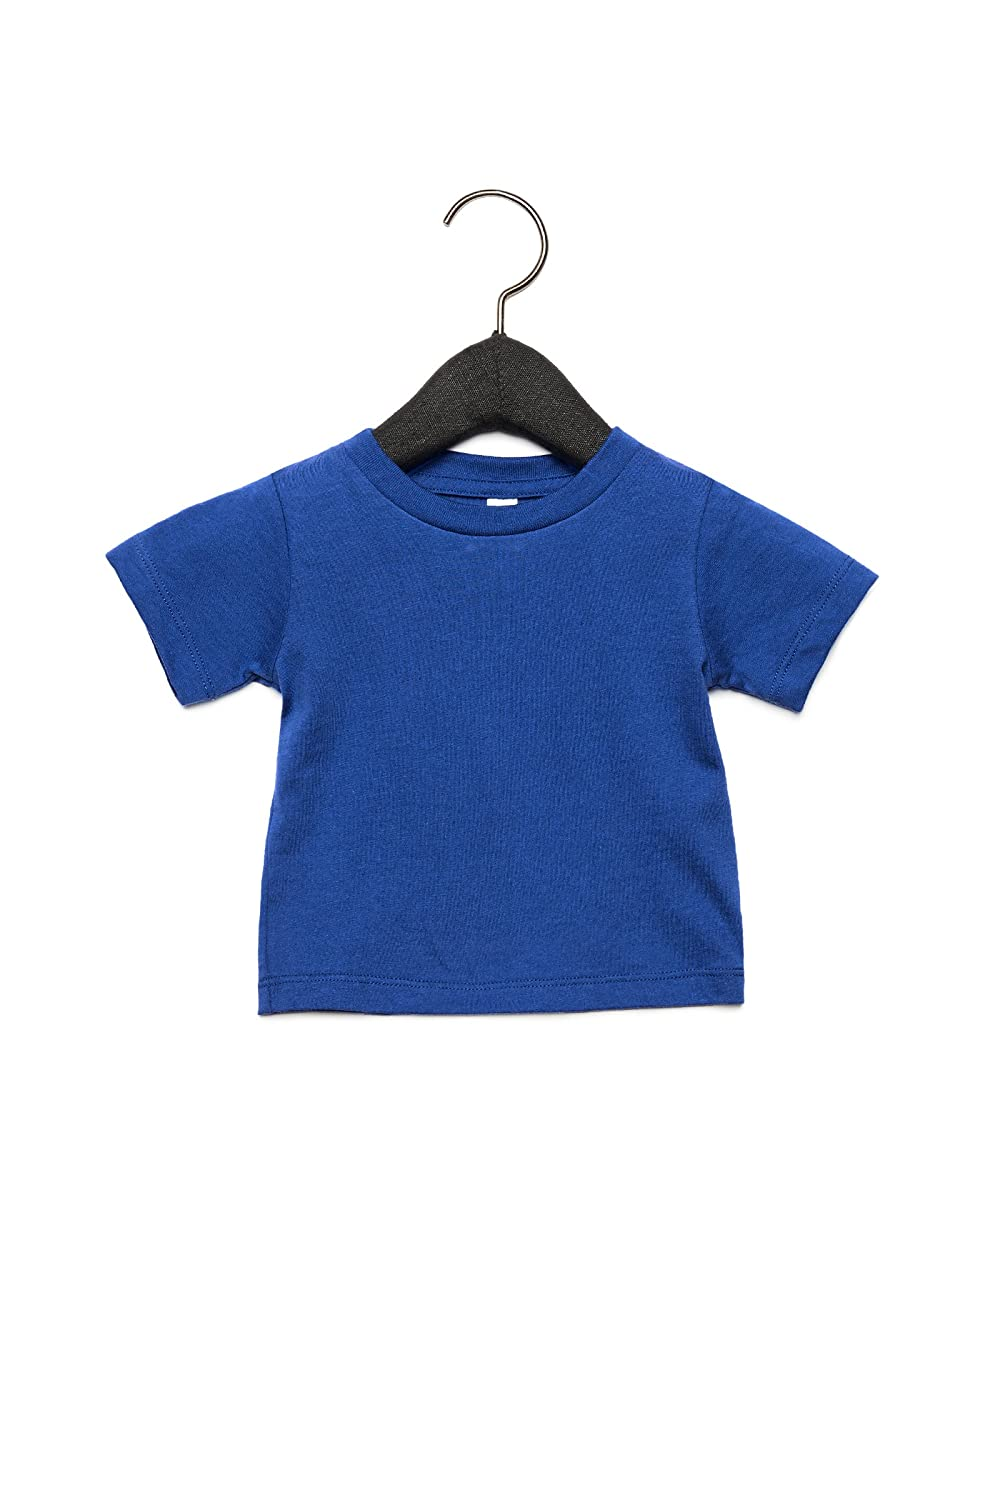 Bella & Canvas Baby Jersey Short Sleeve Tee